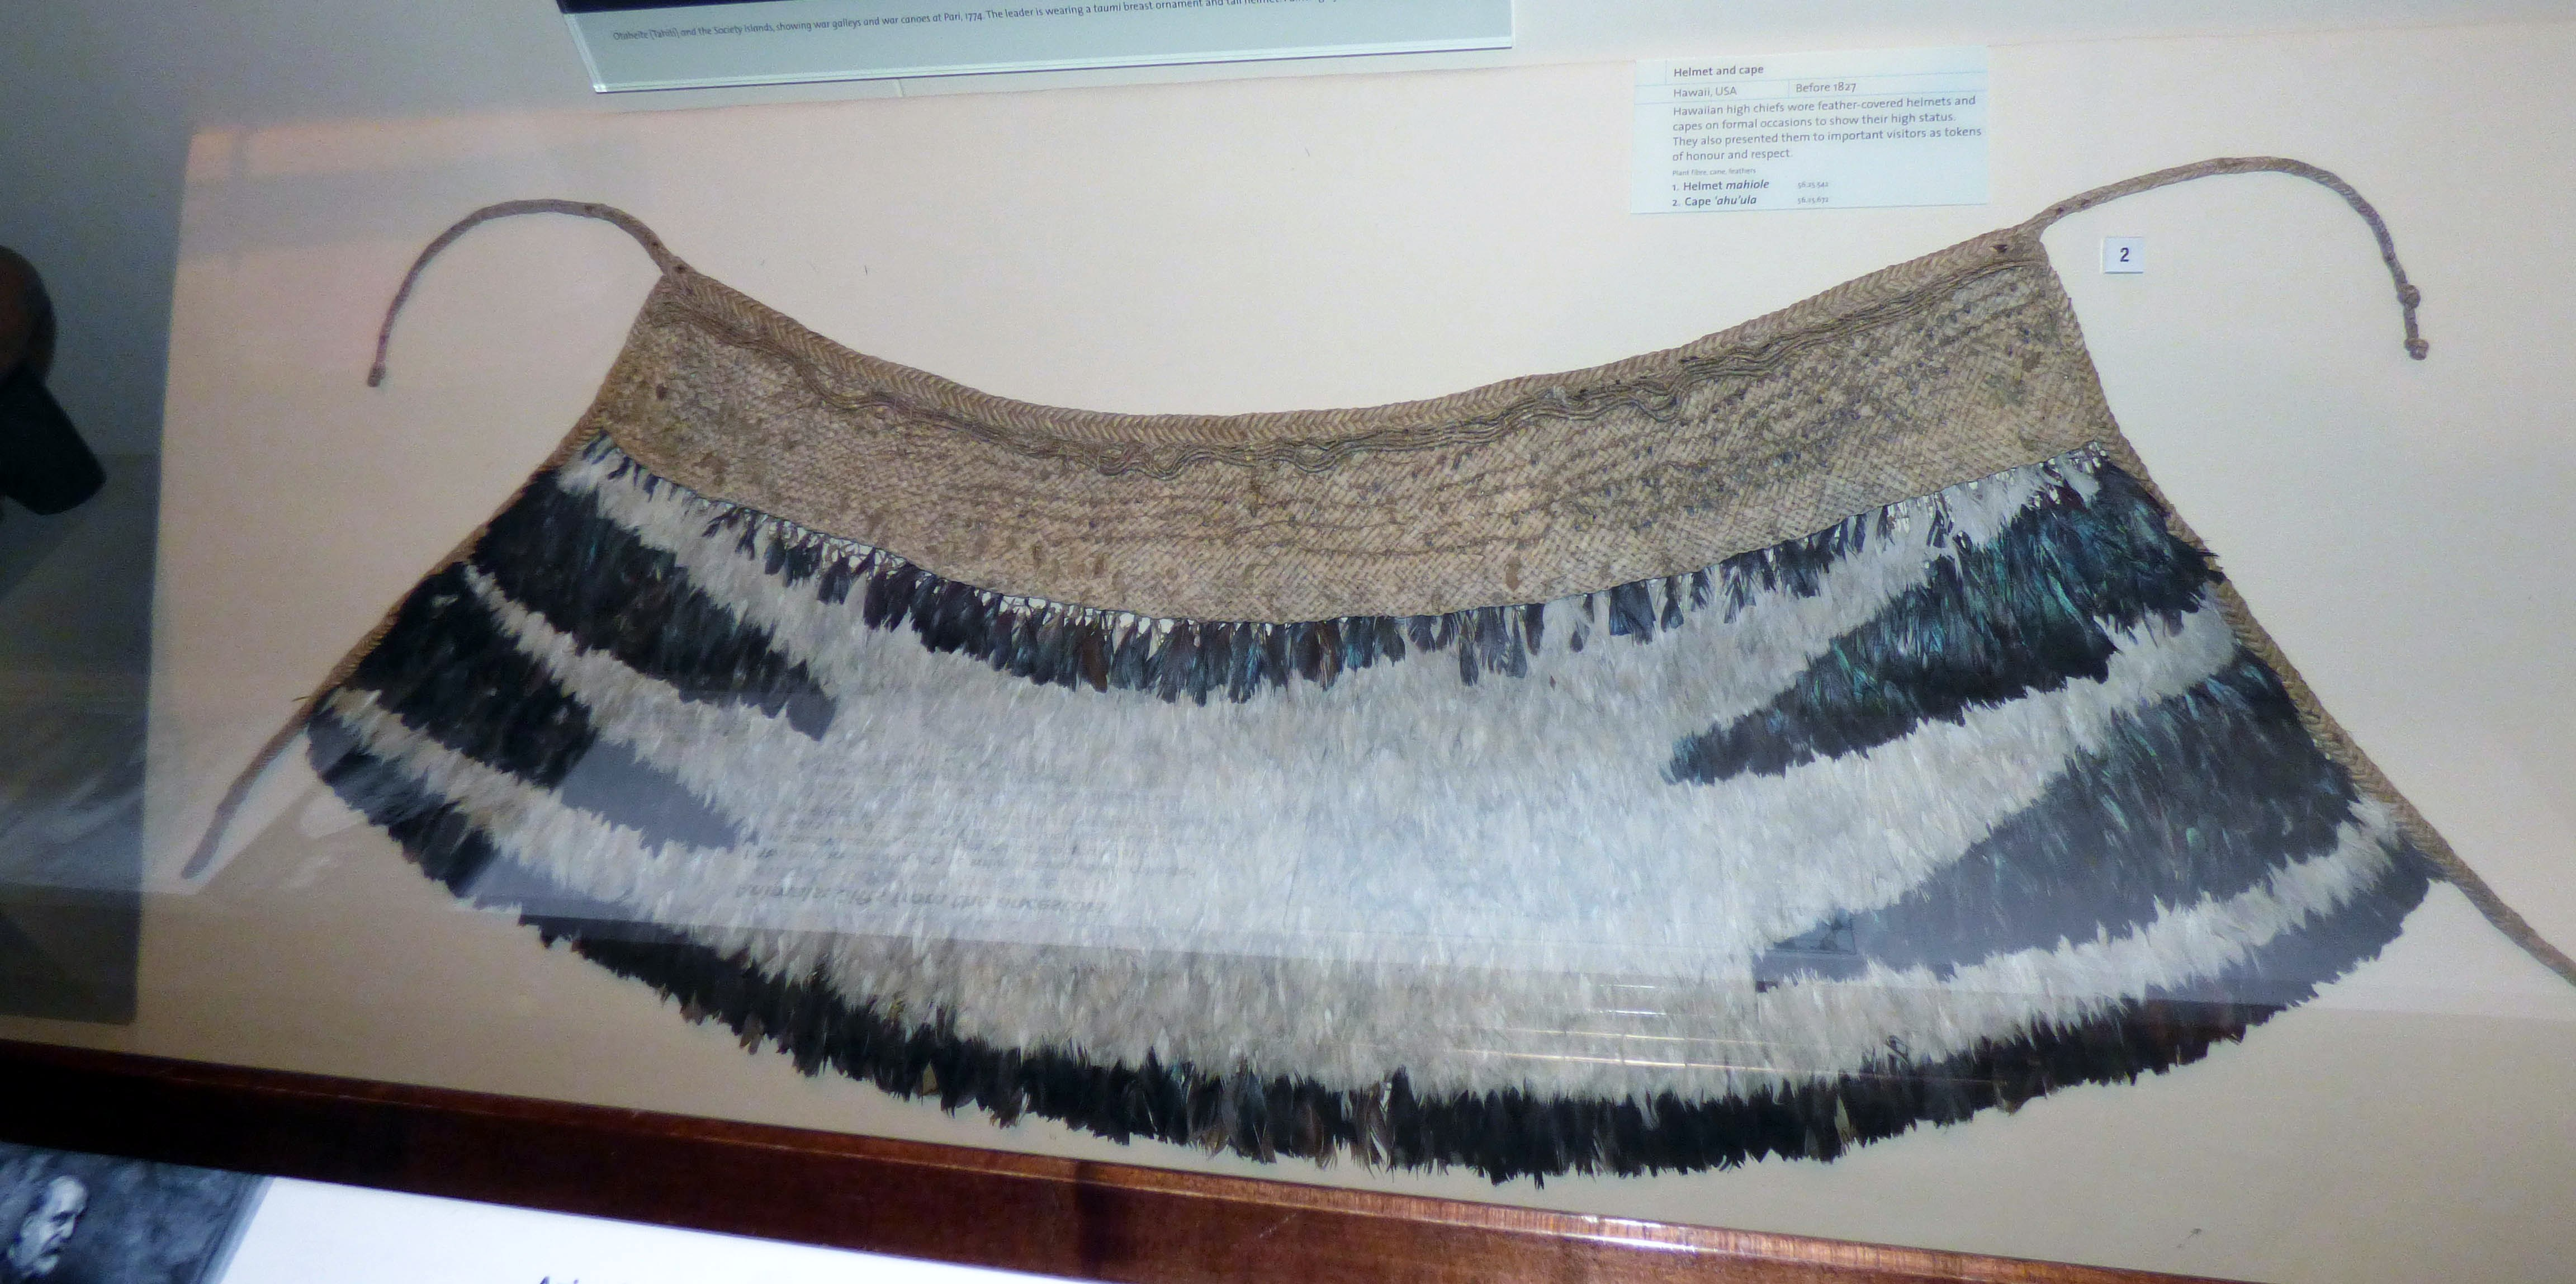 Cape from Hawaii, MEG behind the scenes tour at Liverpool World Museum, 2018